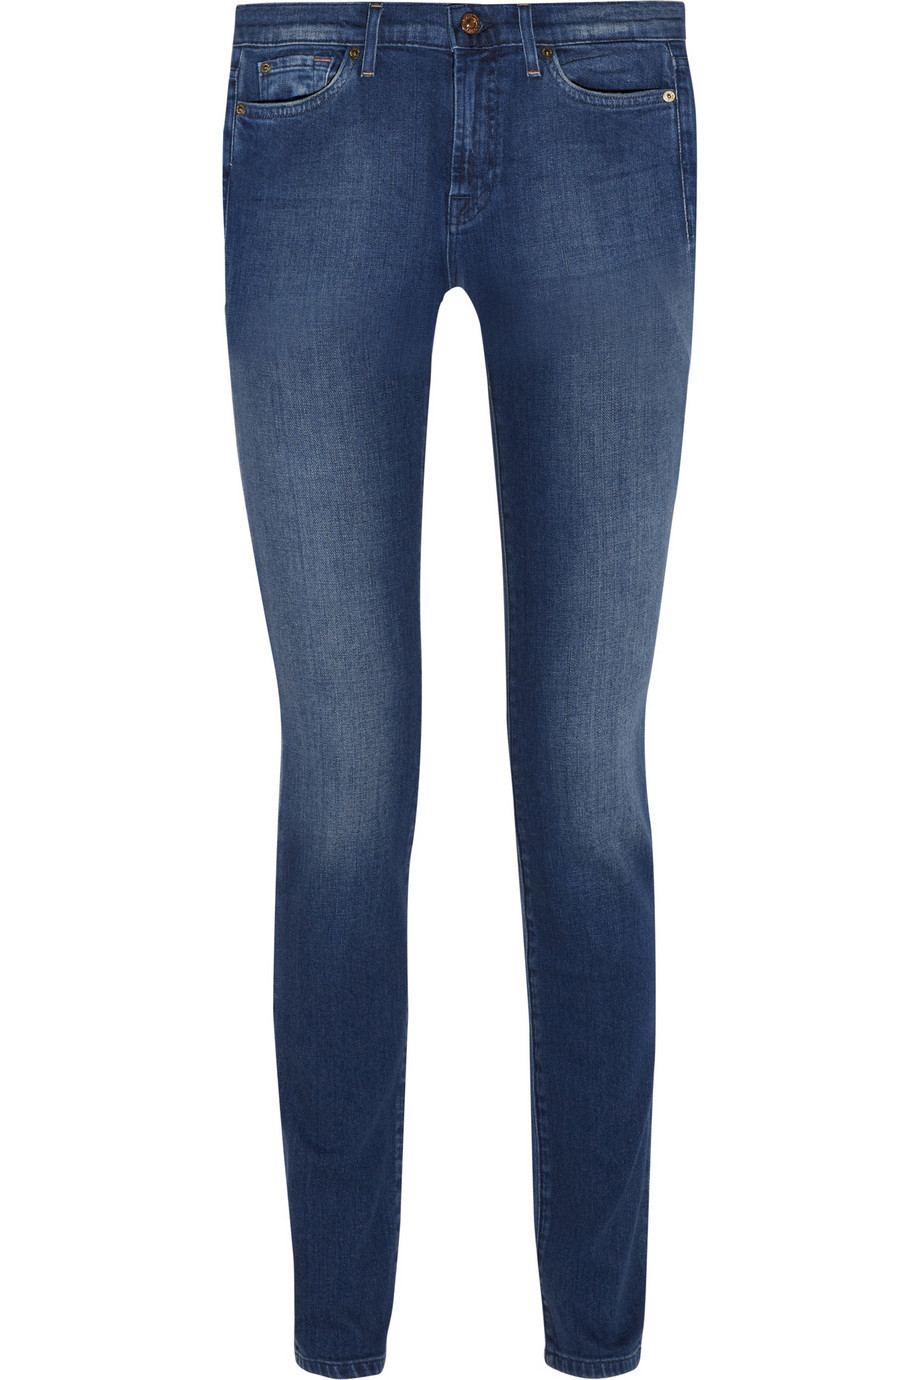 Rozie High Rise Skinny Jeans Mid Denim - style: skinny leg; length: standard; pattern: plain; pocket detail: traditional 5 pocket; waist: mid/regular rise; predominant colour: royal blue; occasions: casual; fibres: cotton - stretch; jeans detail: shading down centre of thigh, dark wash; texture group: denim; pattern type: fabric; season: a/w 2015; wardrobe: basic